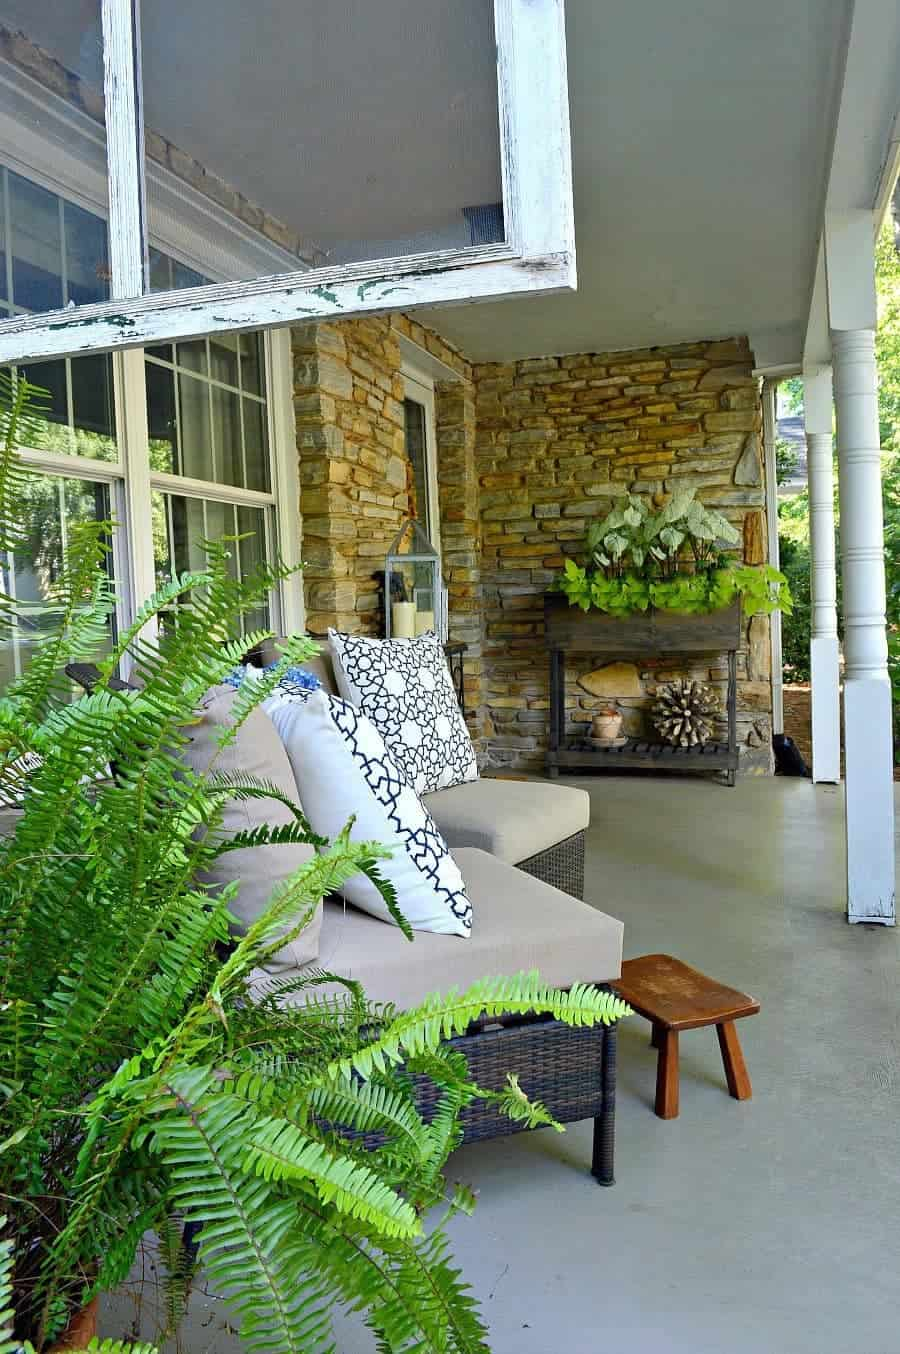 two wicker chairs on porch with blue and white pillows, a little footstool and a green potted fern